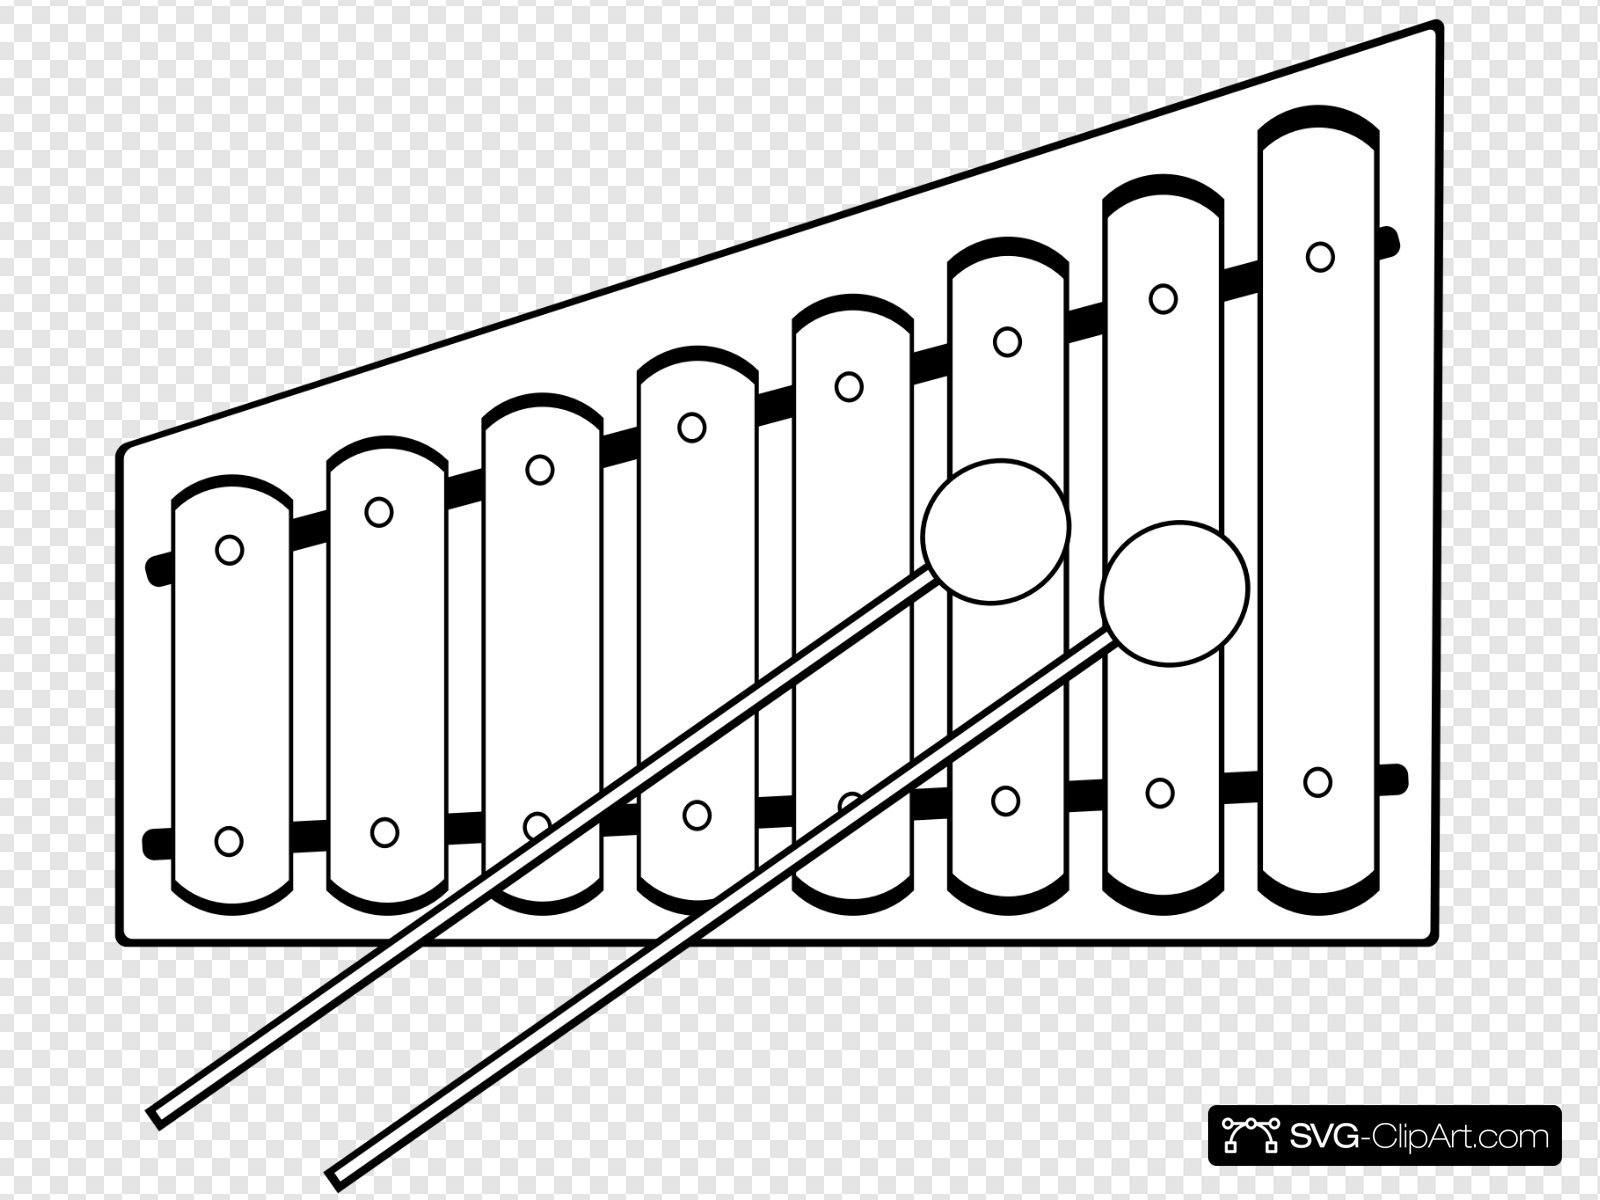 Xylophone clipart xlophone. Clip art icon and